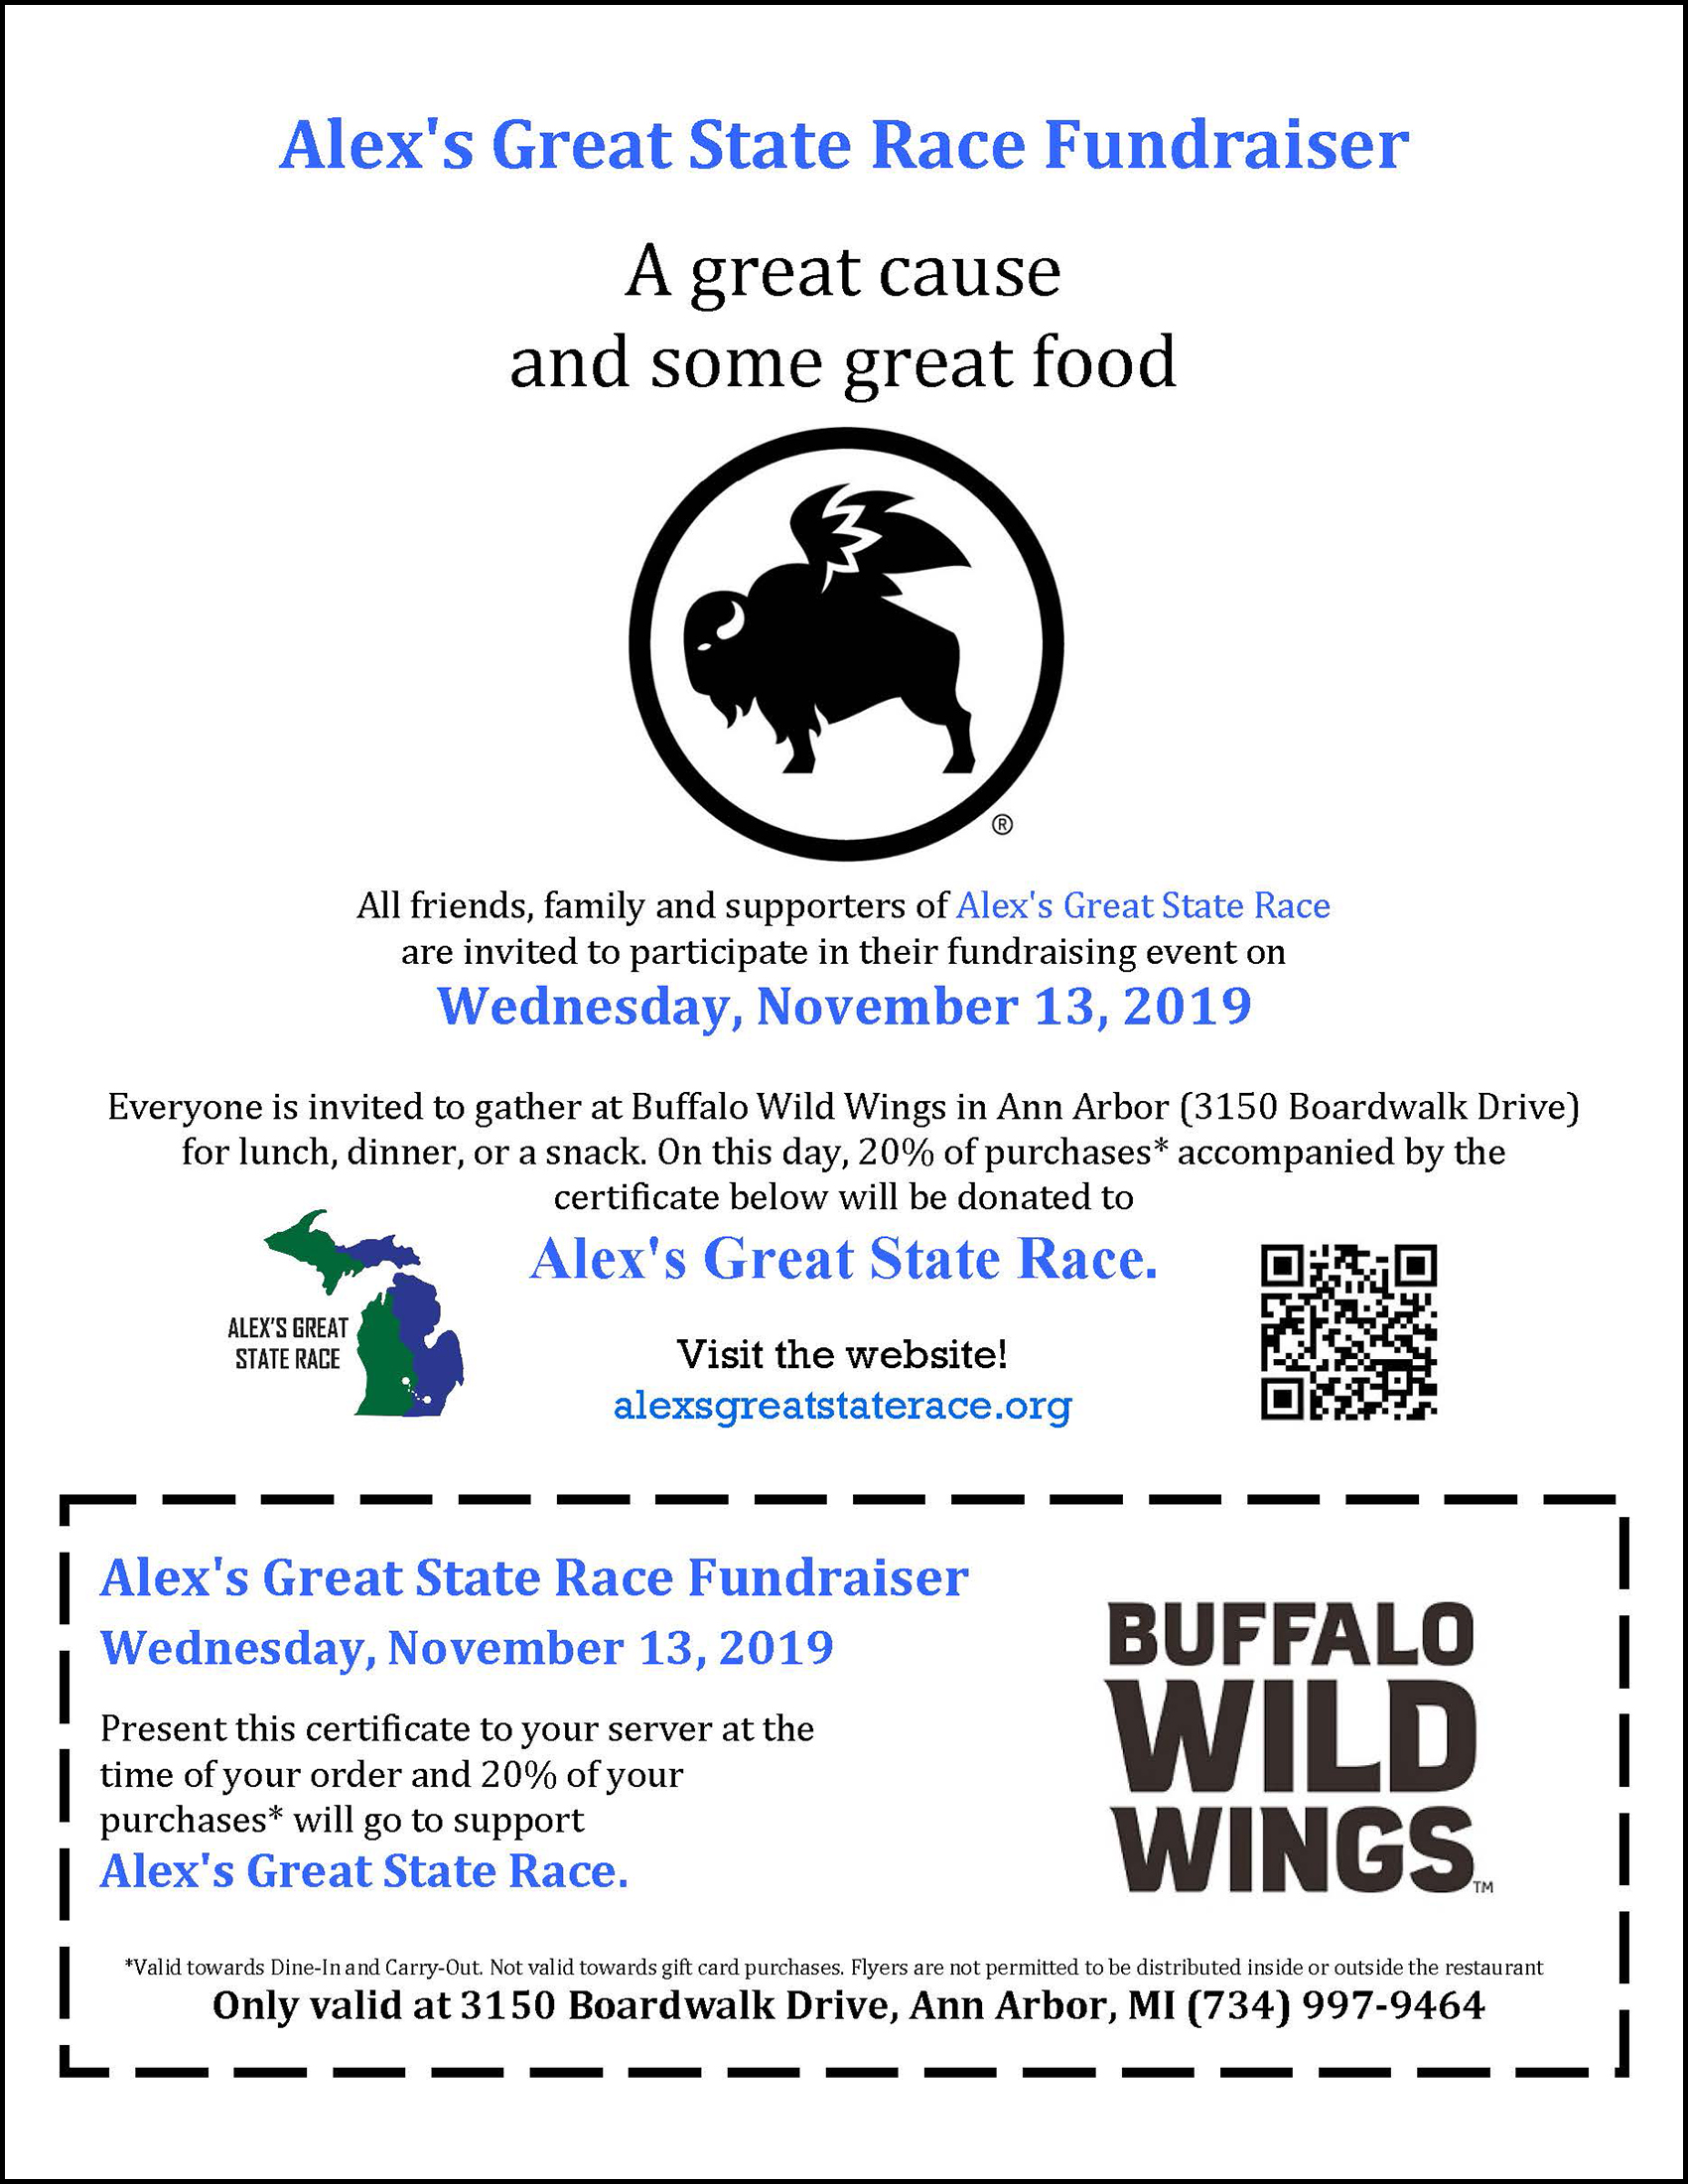 Buffalo Wild Wings fundraiser in Ann Arbor on November 13, 2019